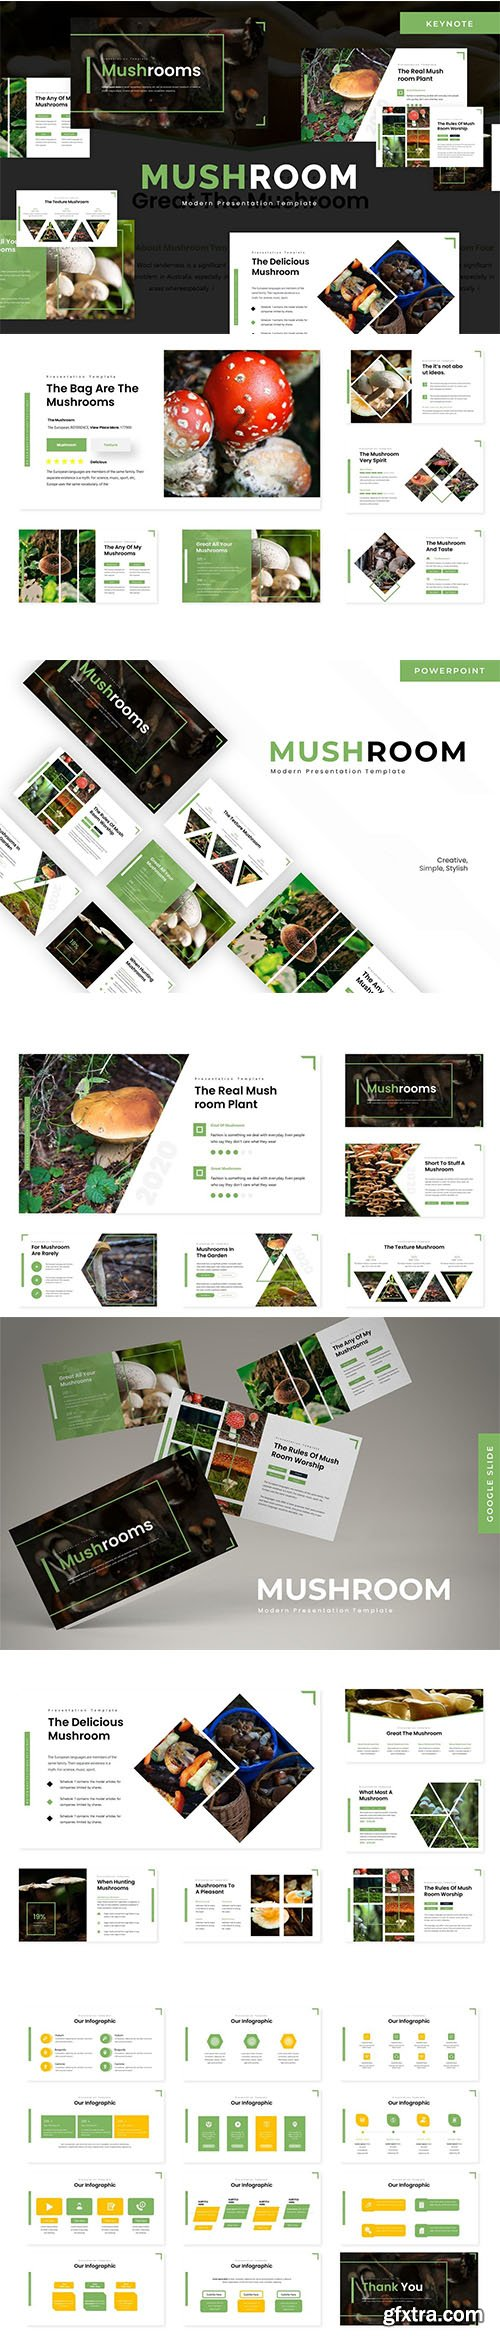 Mushroom - Powerpoint Template, Keynote Template and Google Slide Template